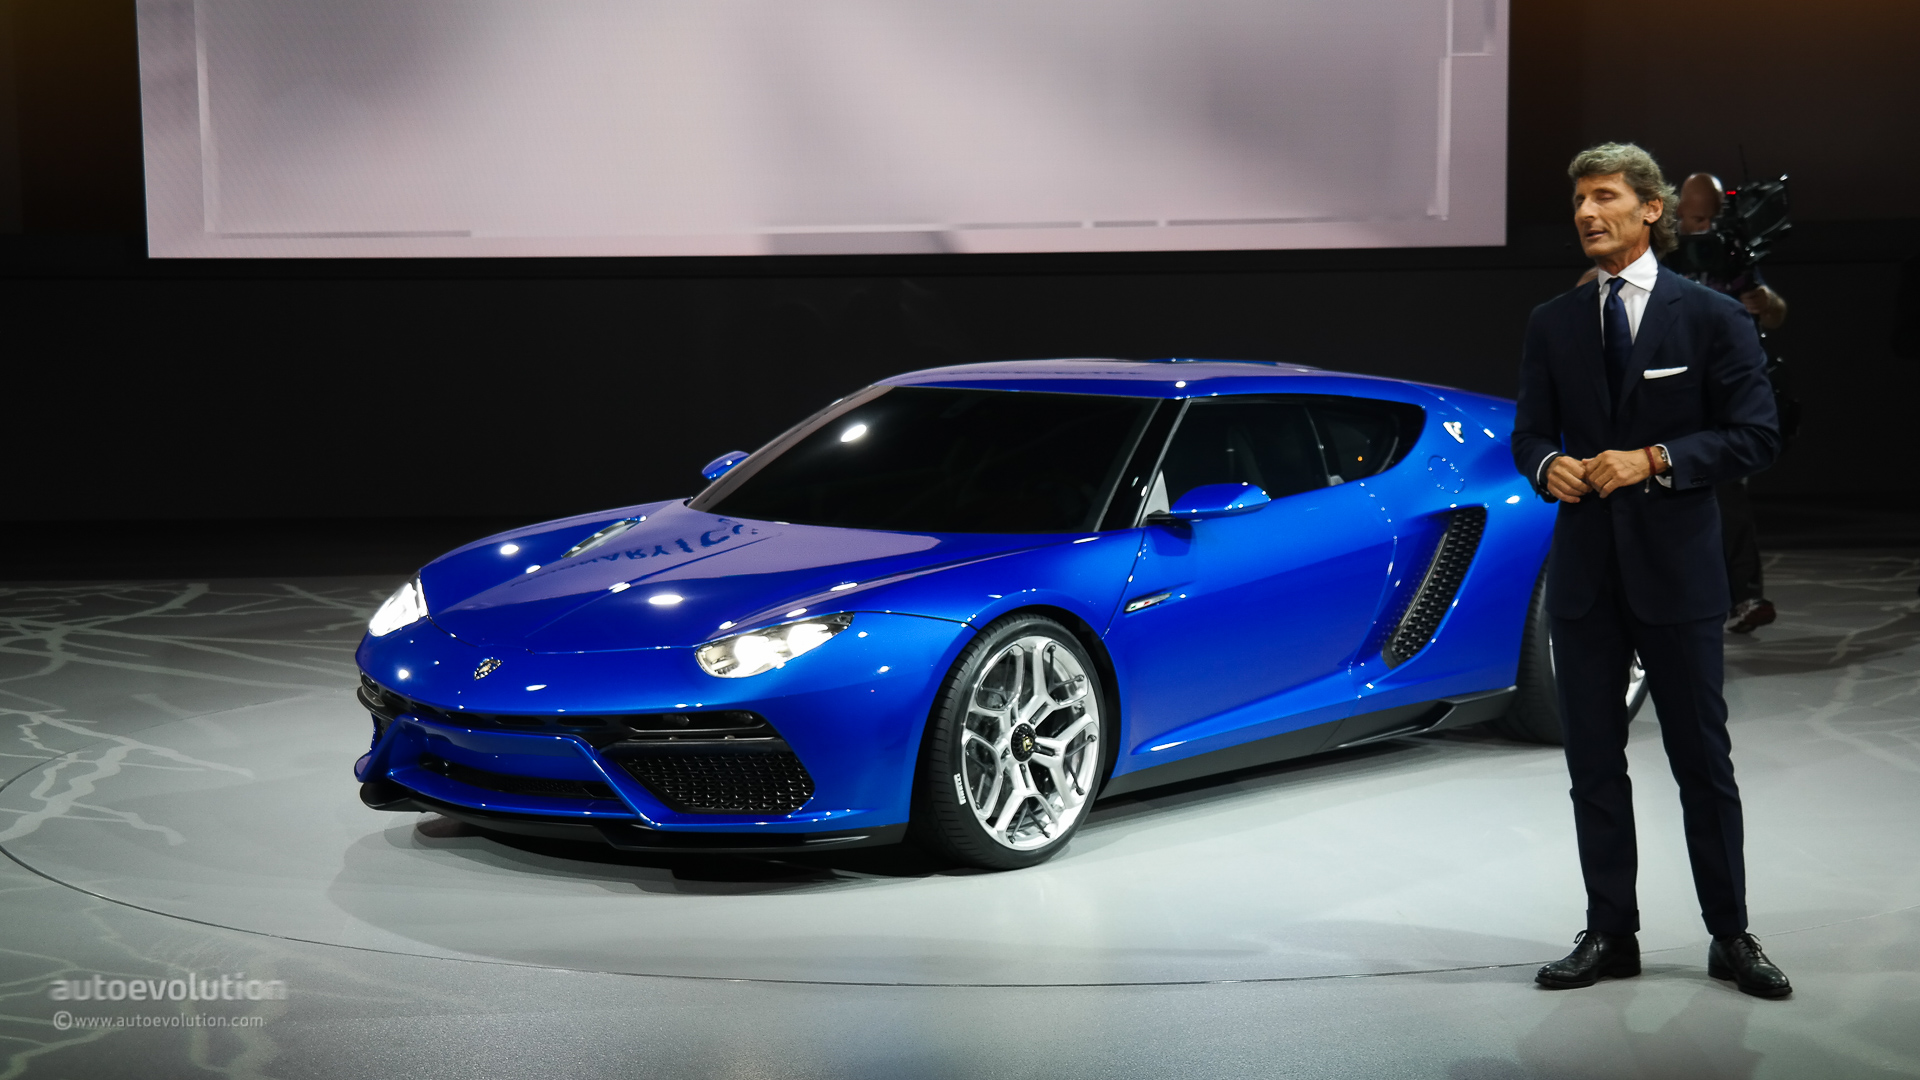 Lamborghini Asterion Lpi 910 4 Looks Like An Estoque Evora